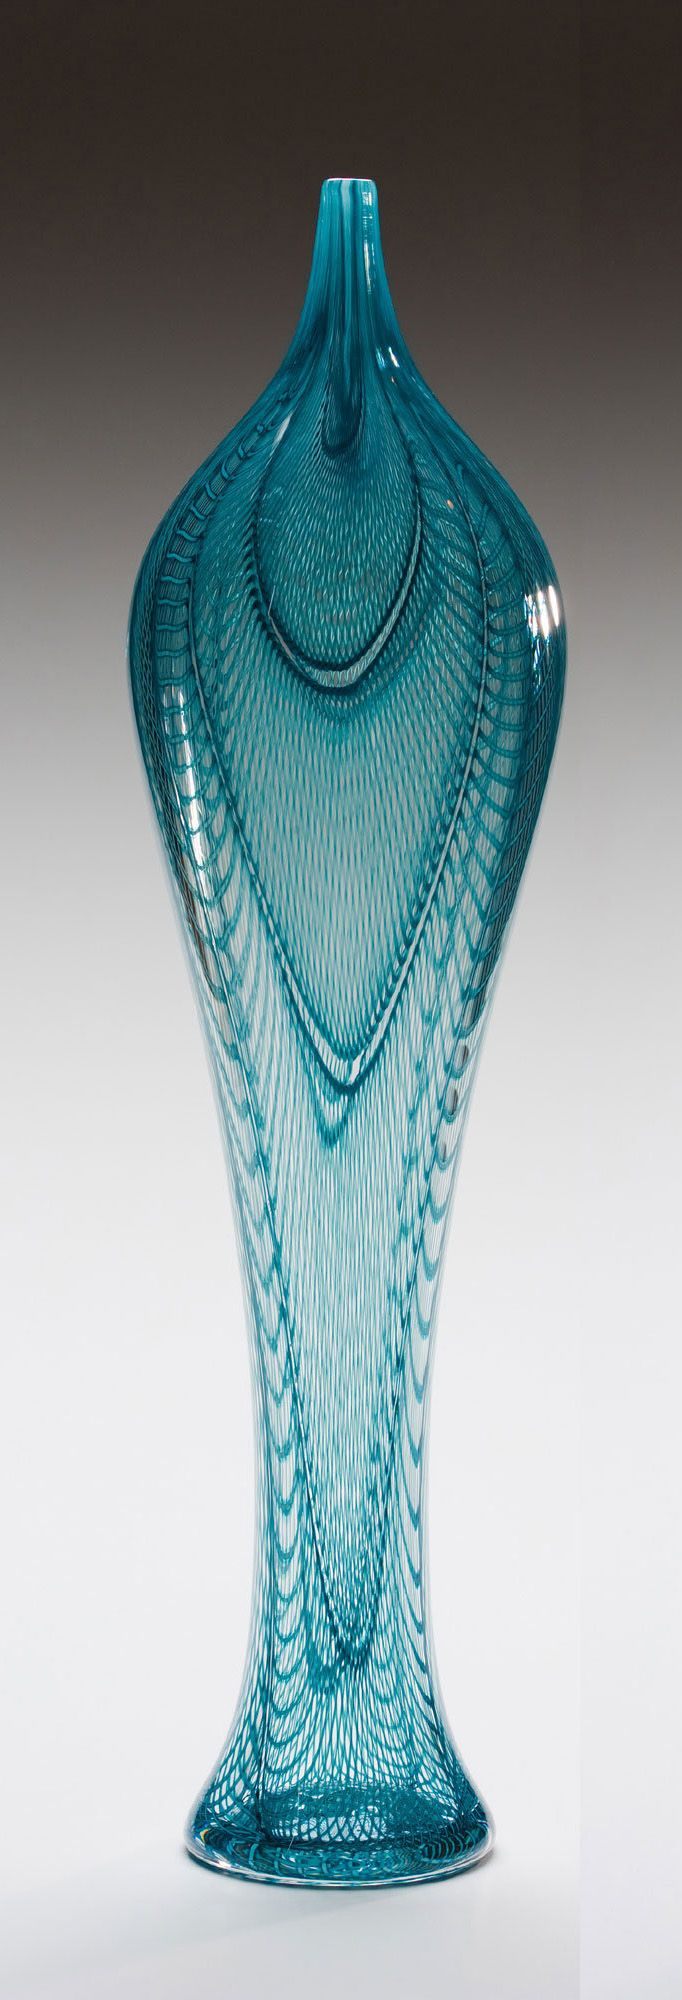 """Sage Iris Form"" Art Glass Vessel Created by Kenny Pieper"